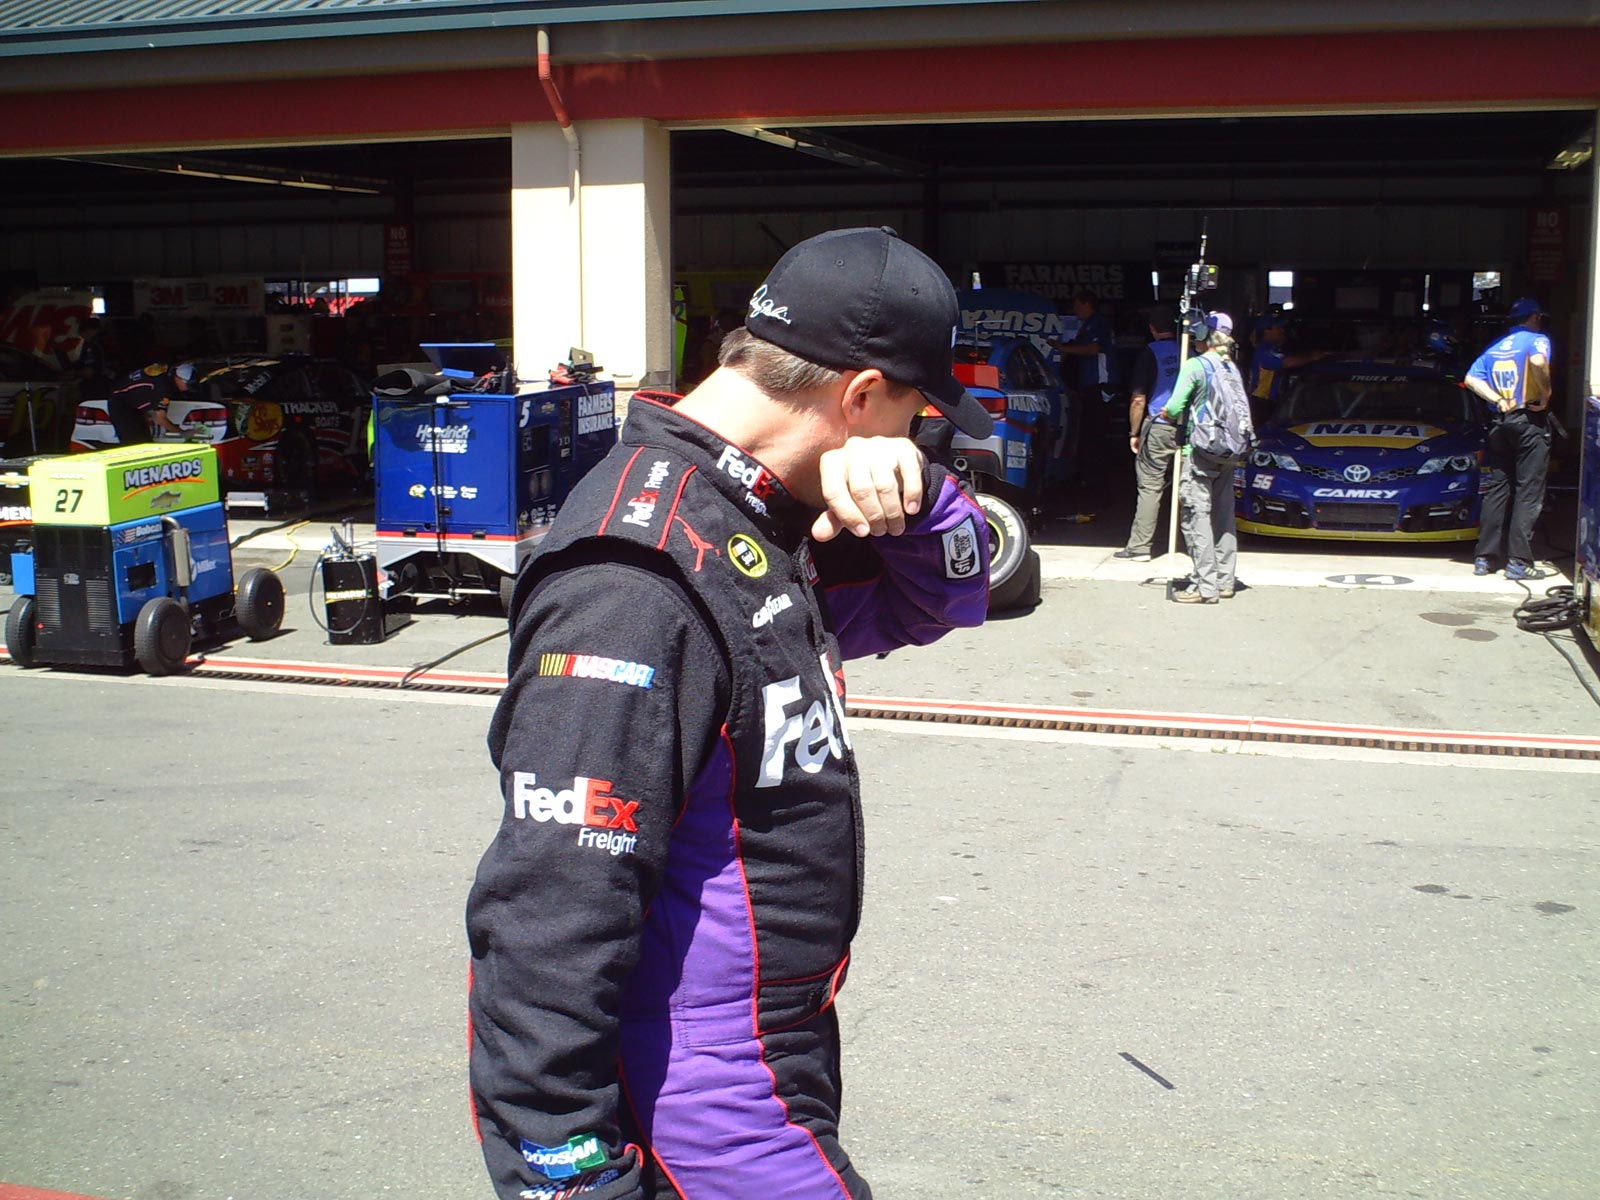 sonoma-friday-denny-hamlin